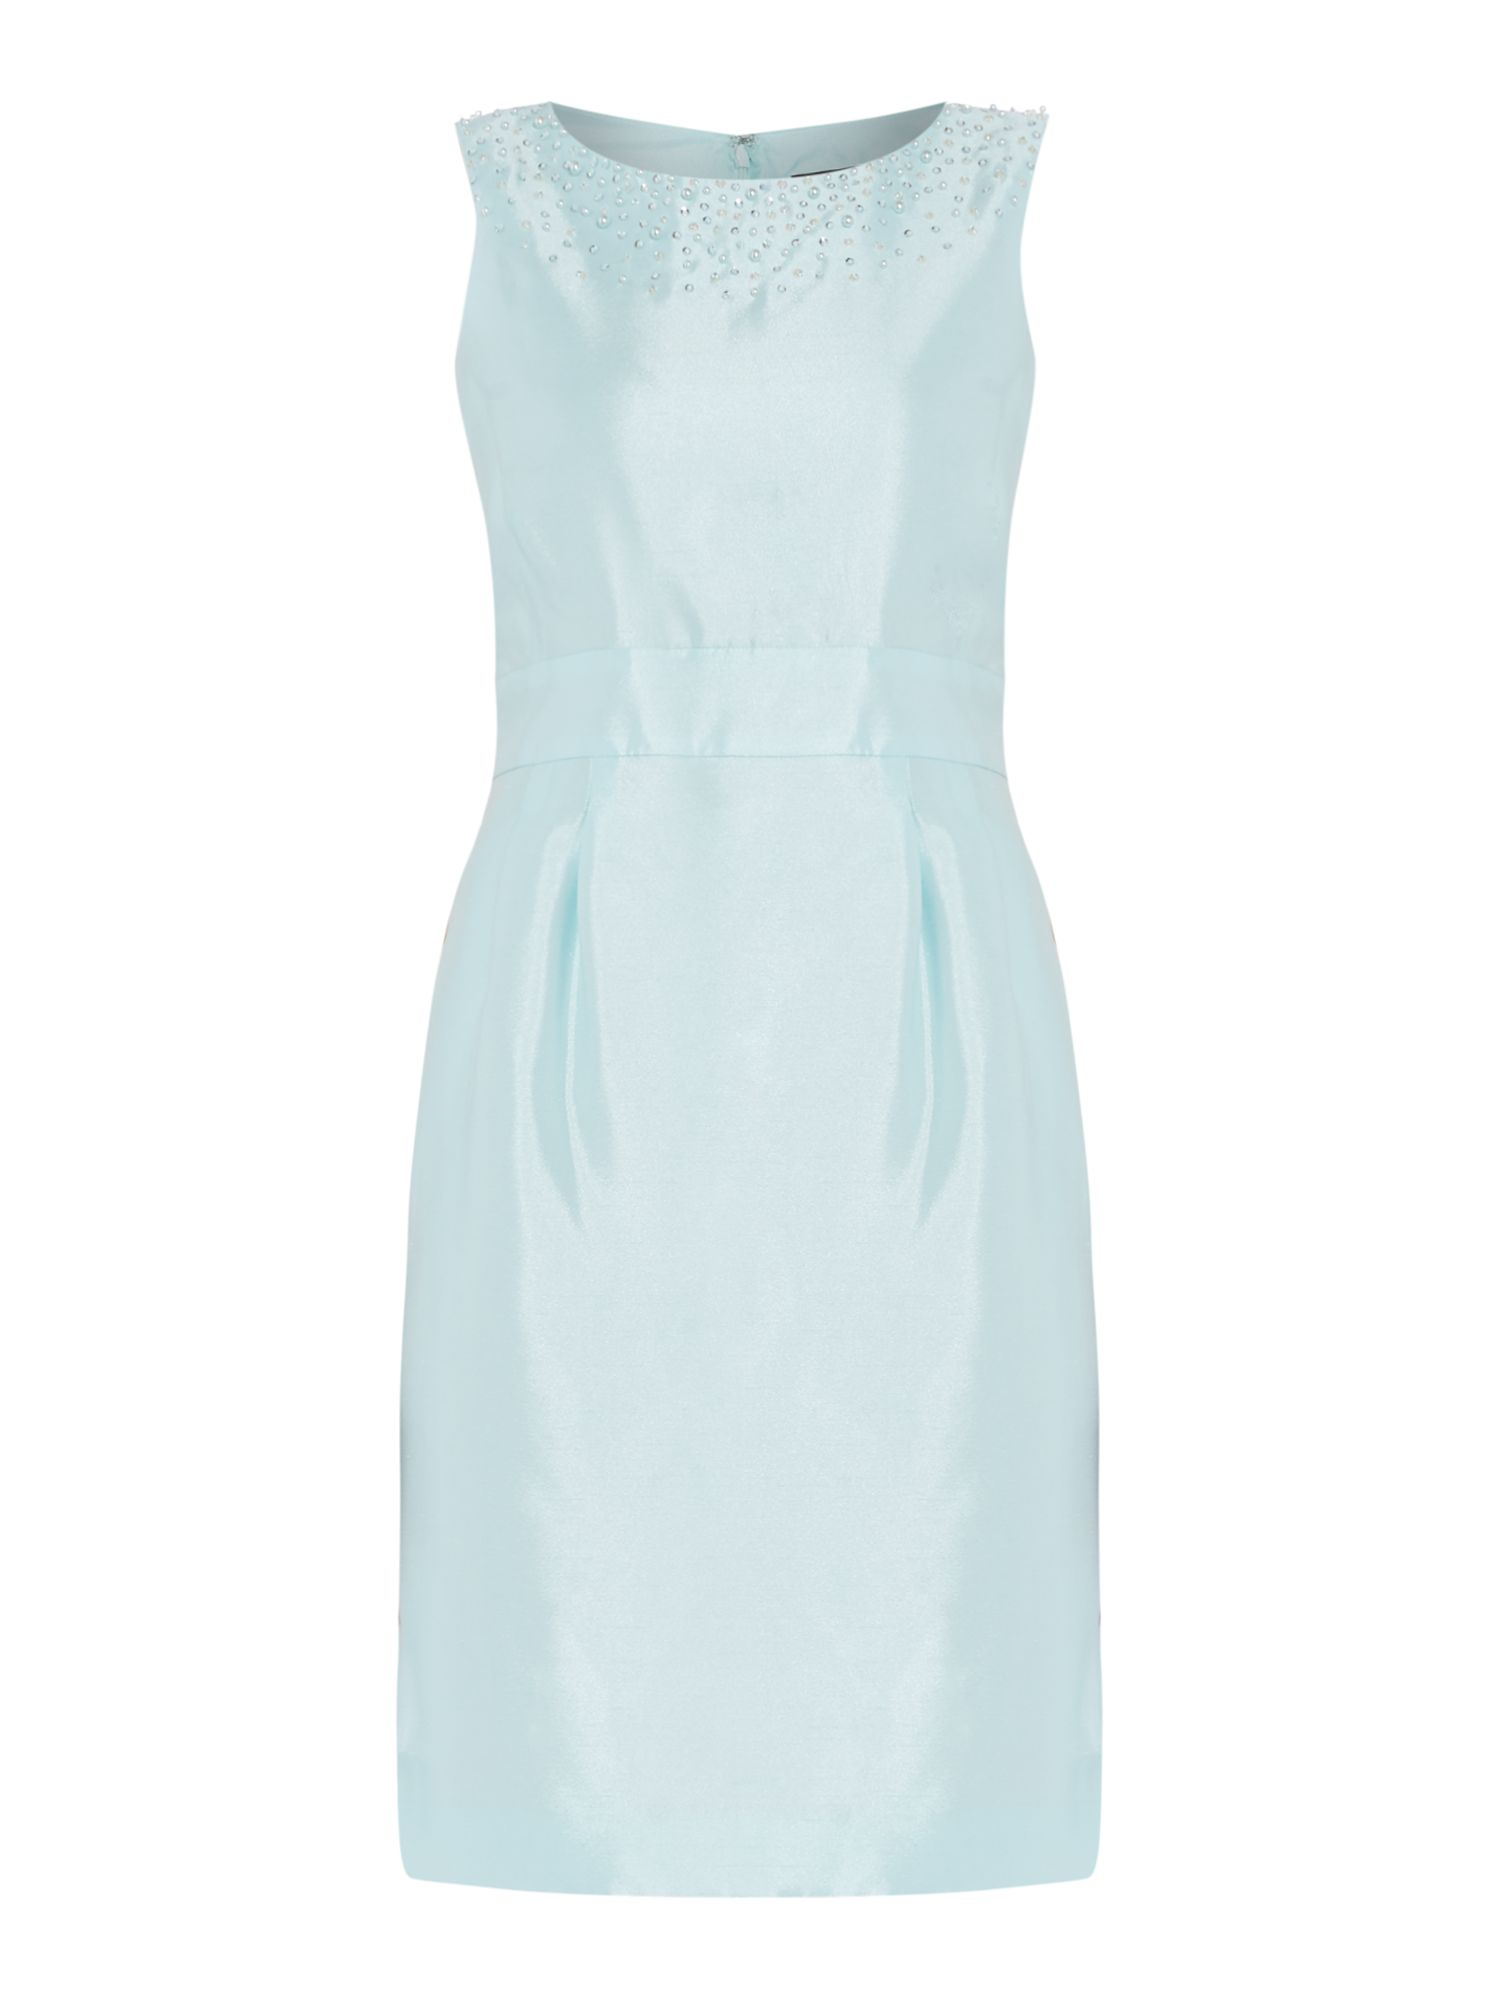 Tahari ASL Aqua blue summer dress, Aqua